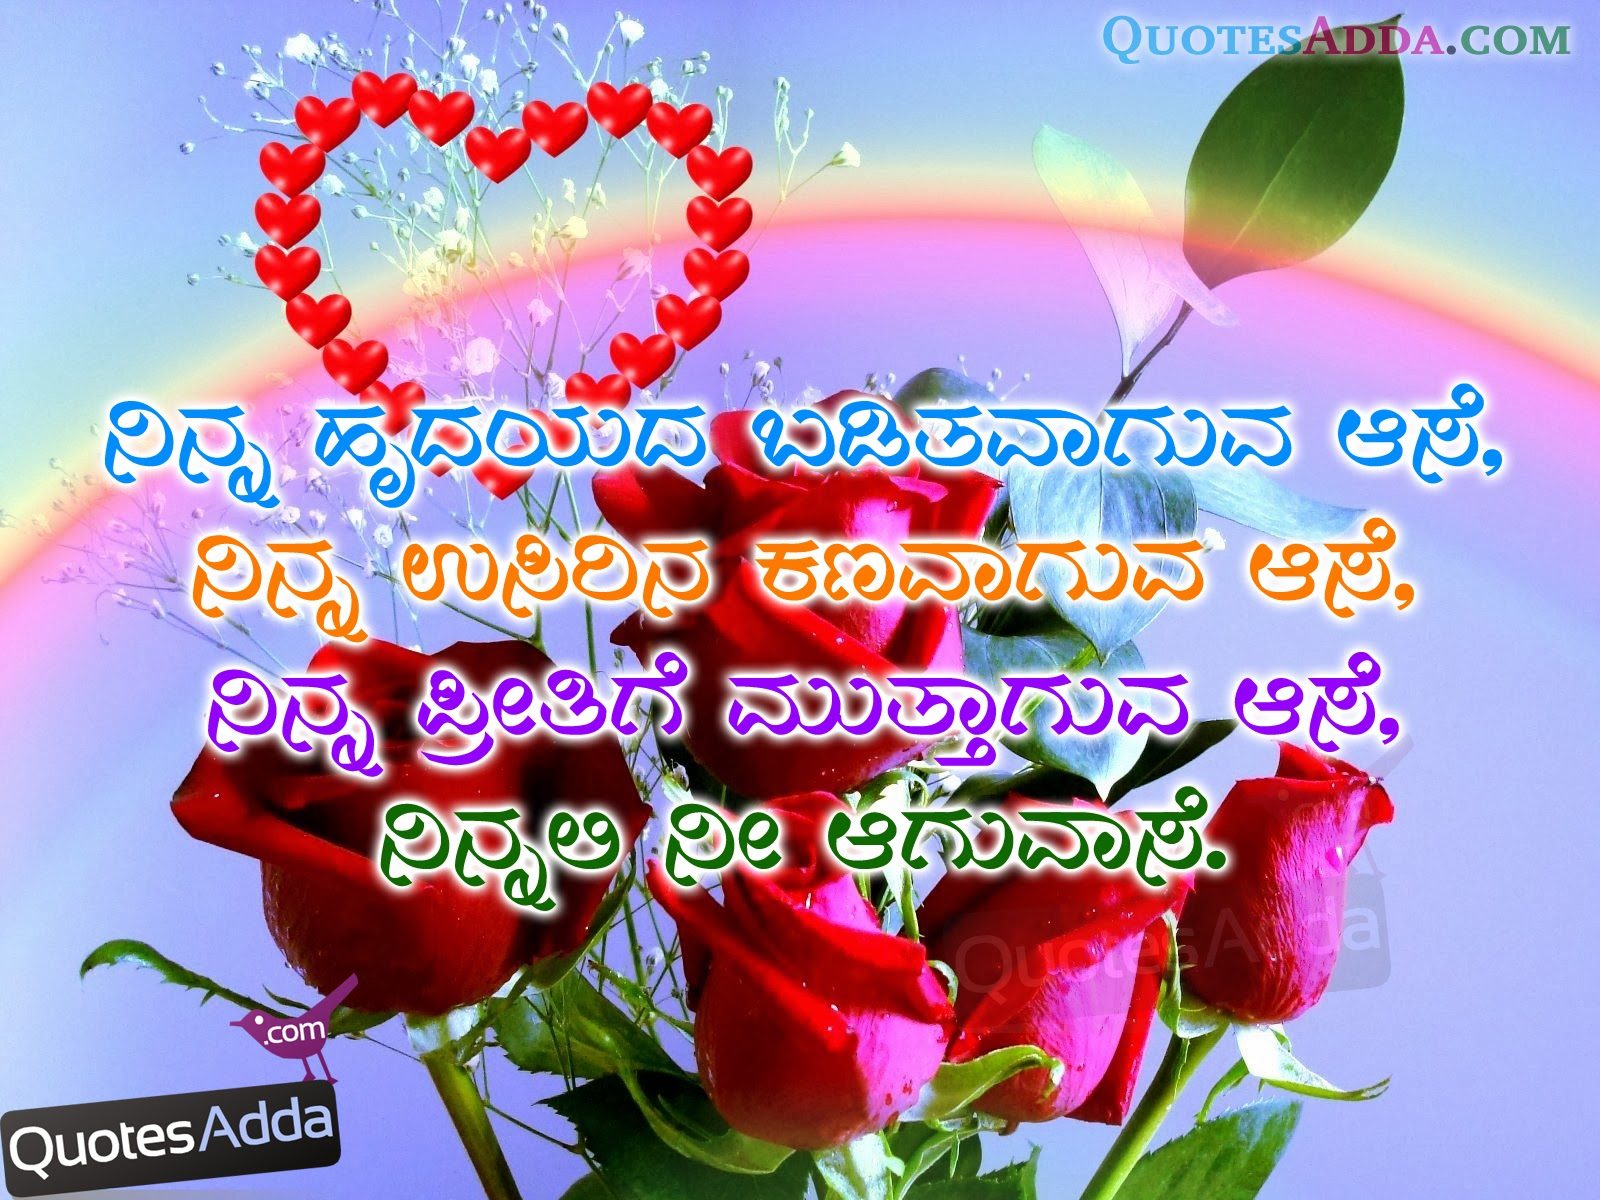 Love Quotes Wallpaper In Kannada : Kannada Love Quotes 2 Kannada Love Images QuotesAdda ...